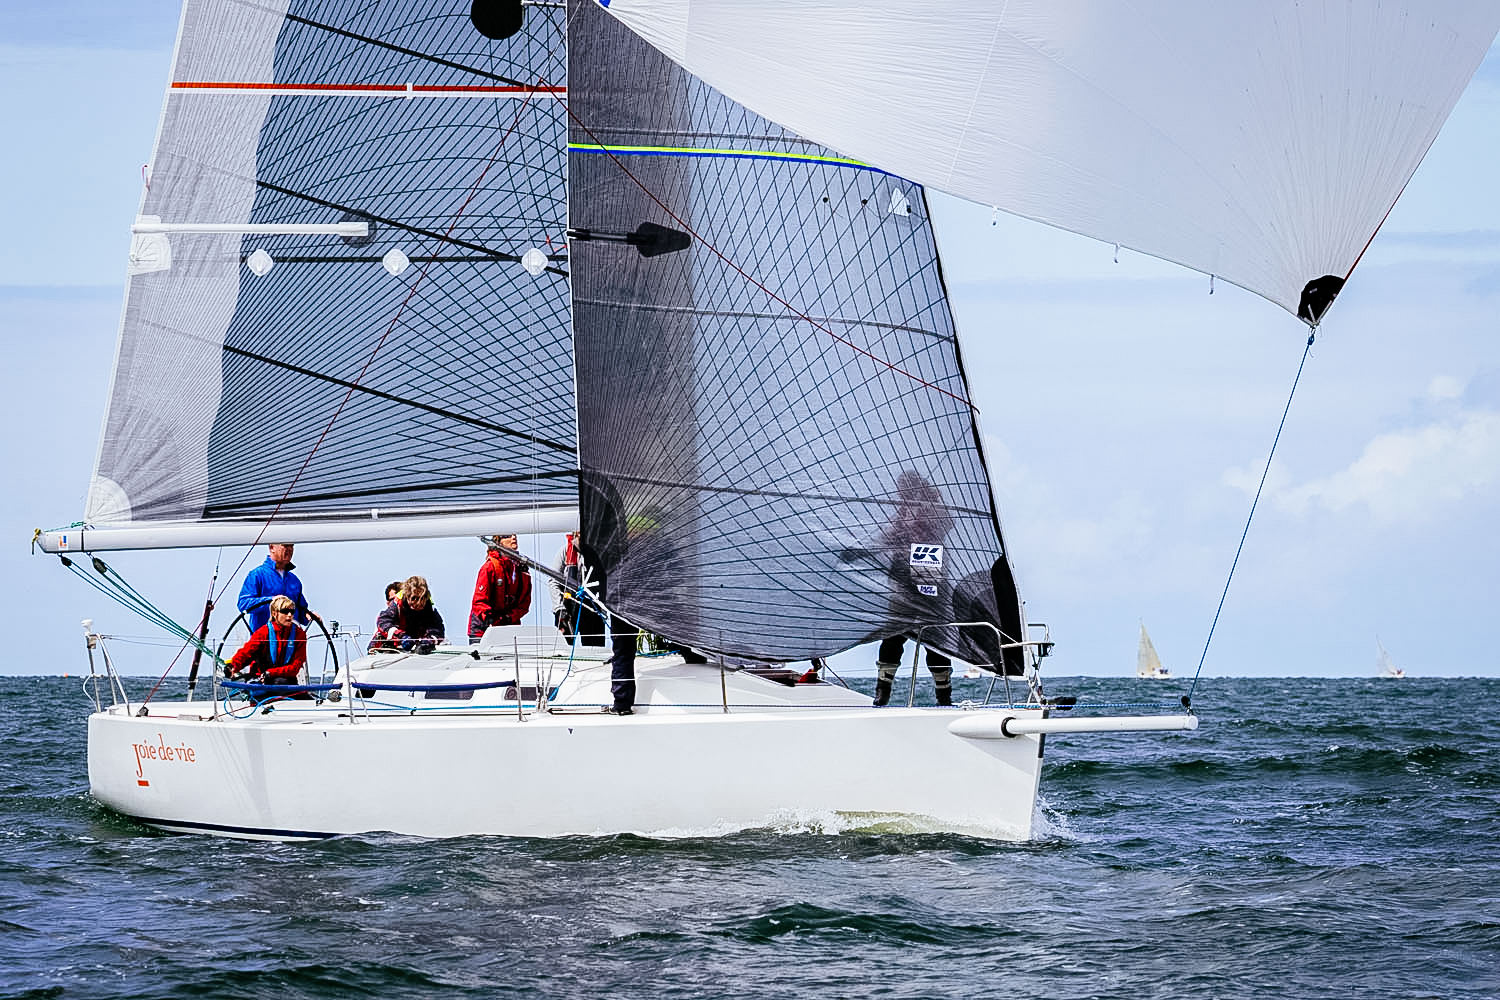 J/109 with Tape-Drive carbon and black aramid racing sails. The mainsail has a  one-meter  taffeta strip up the leech to increase the sail's longevity. Notice that the inboard edge of the taffeta has an optional wavy pattern instead of straight edge to reduce hinging.